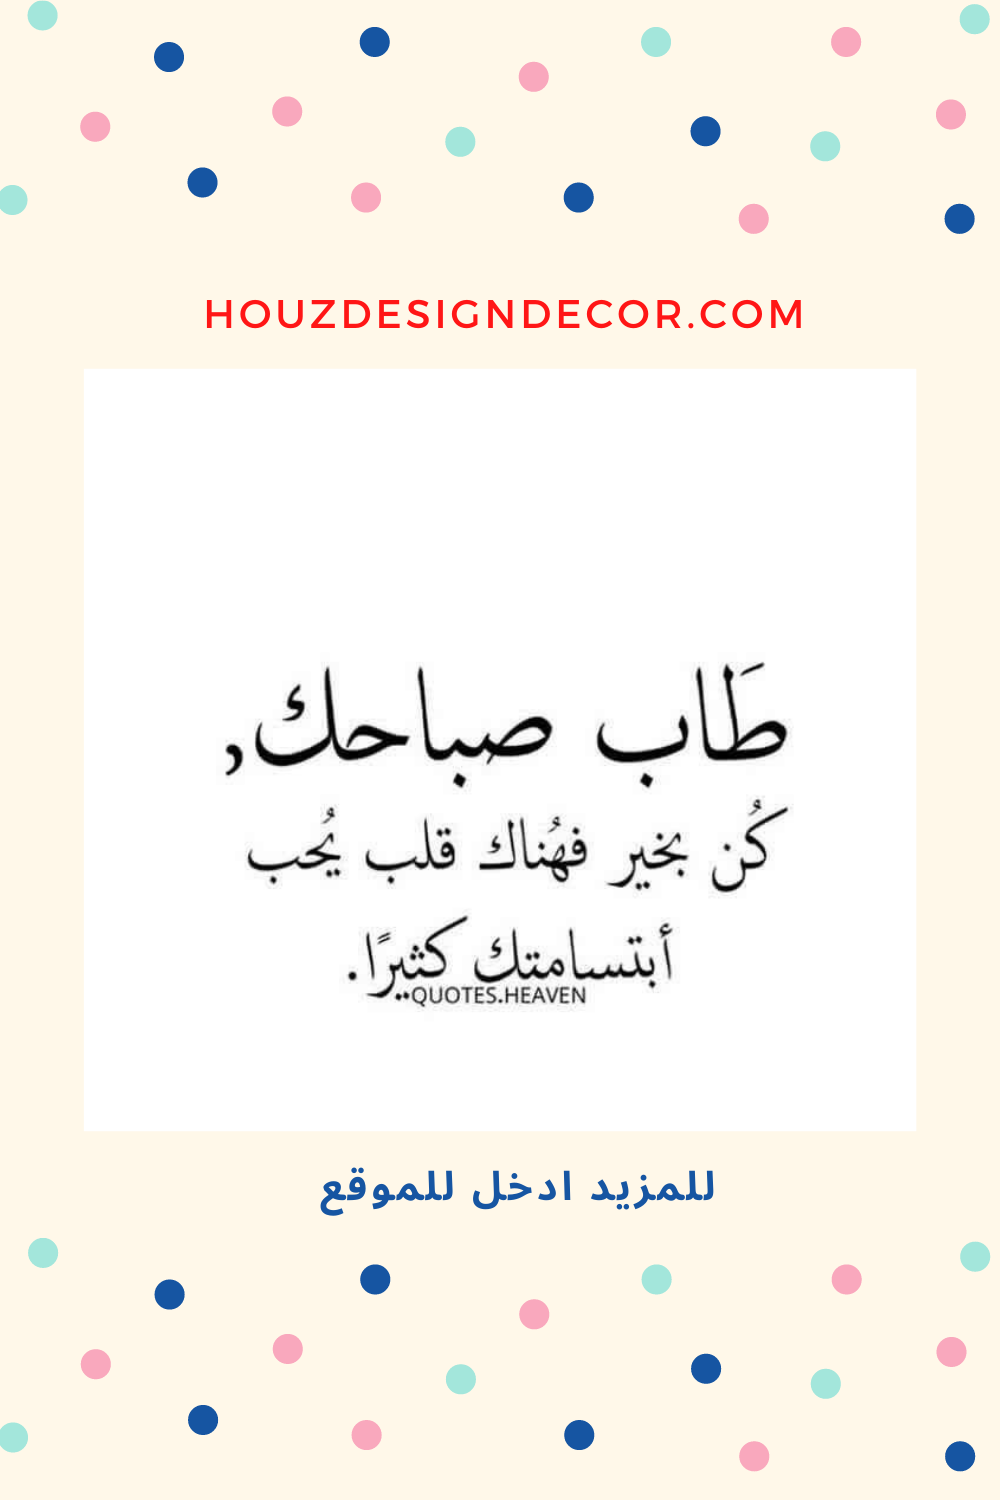 Morning Texts For Him Arabic Morning Texts For Him Morning Texts Text For Him